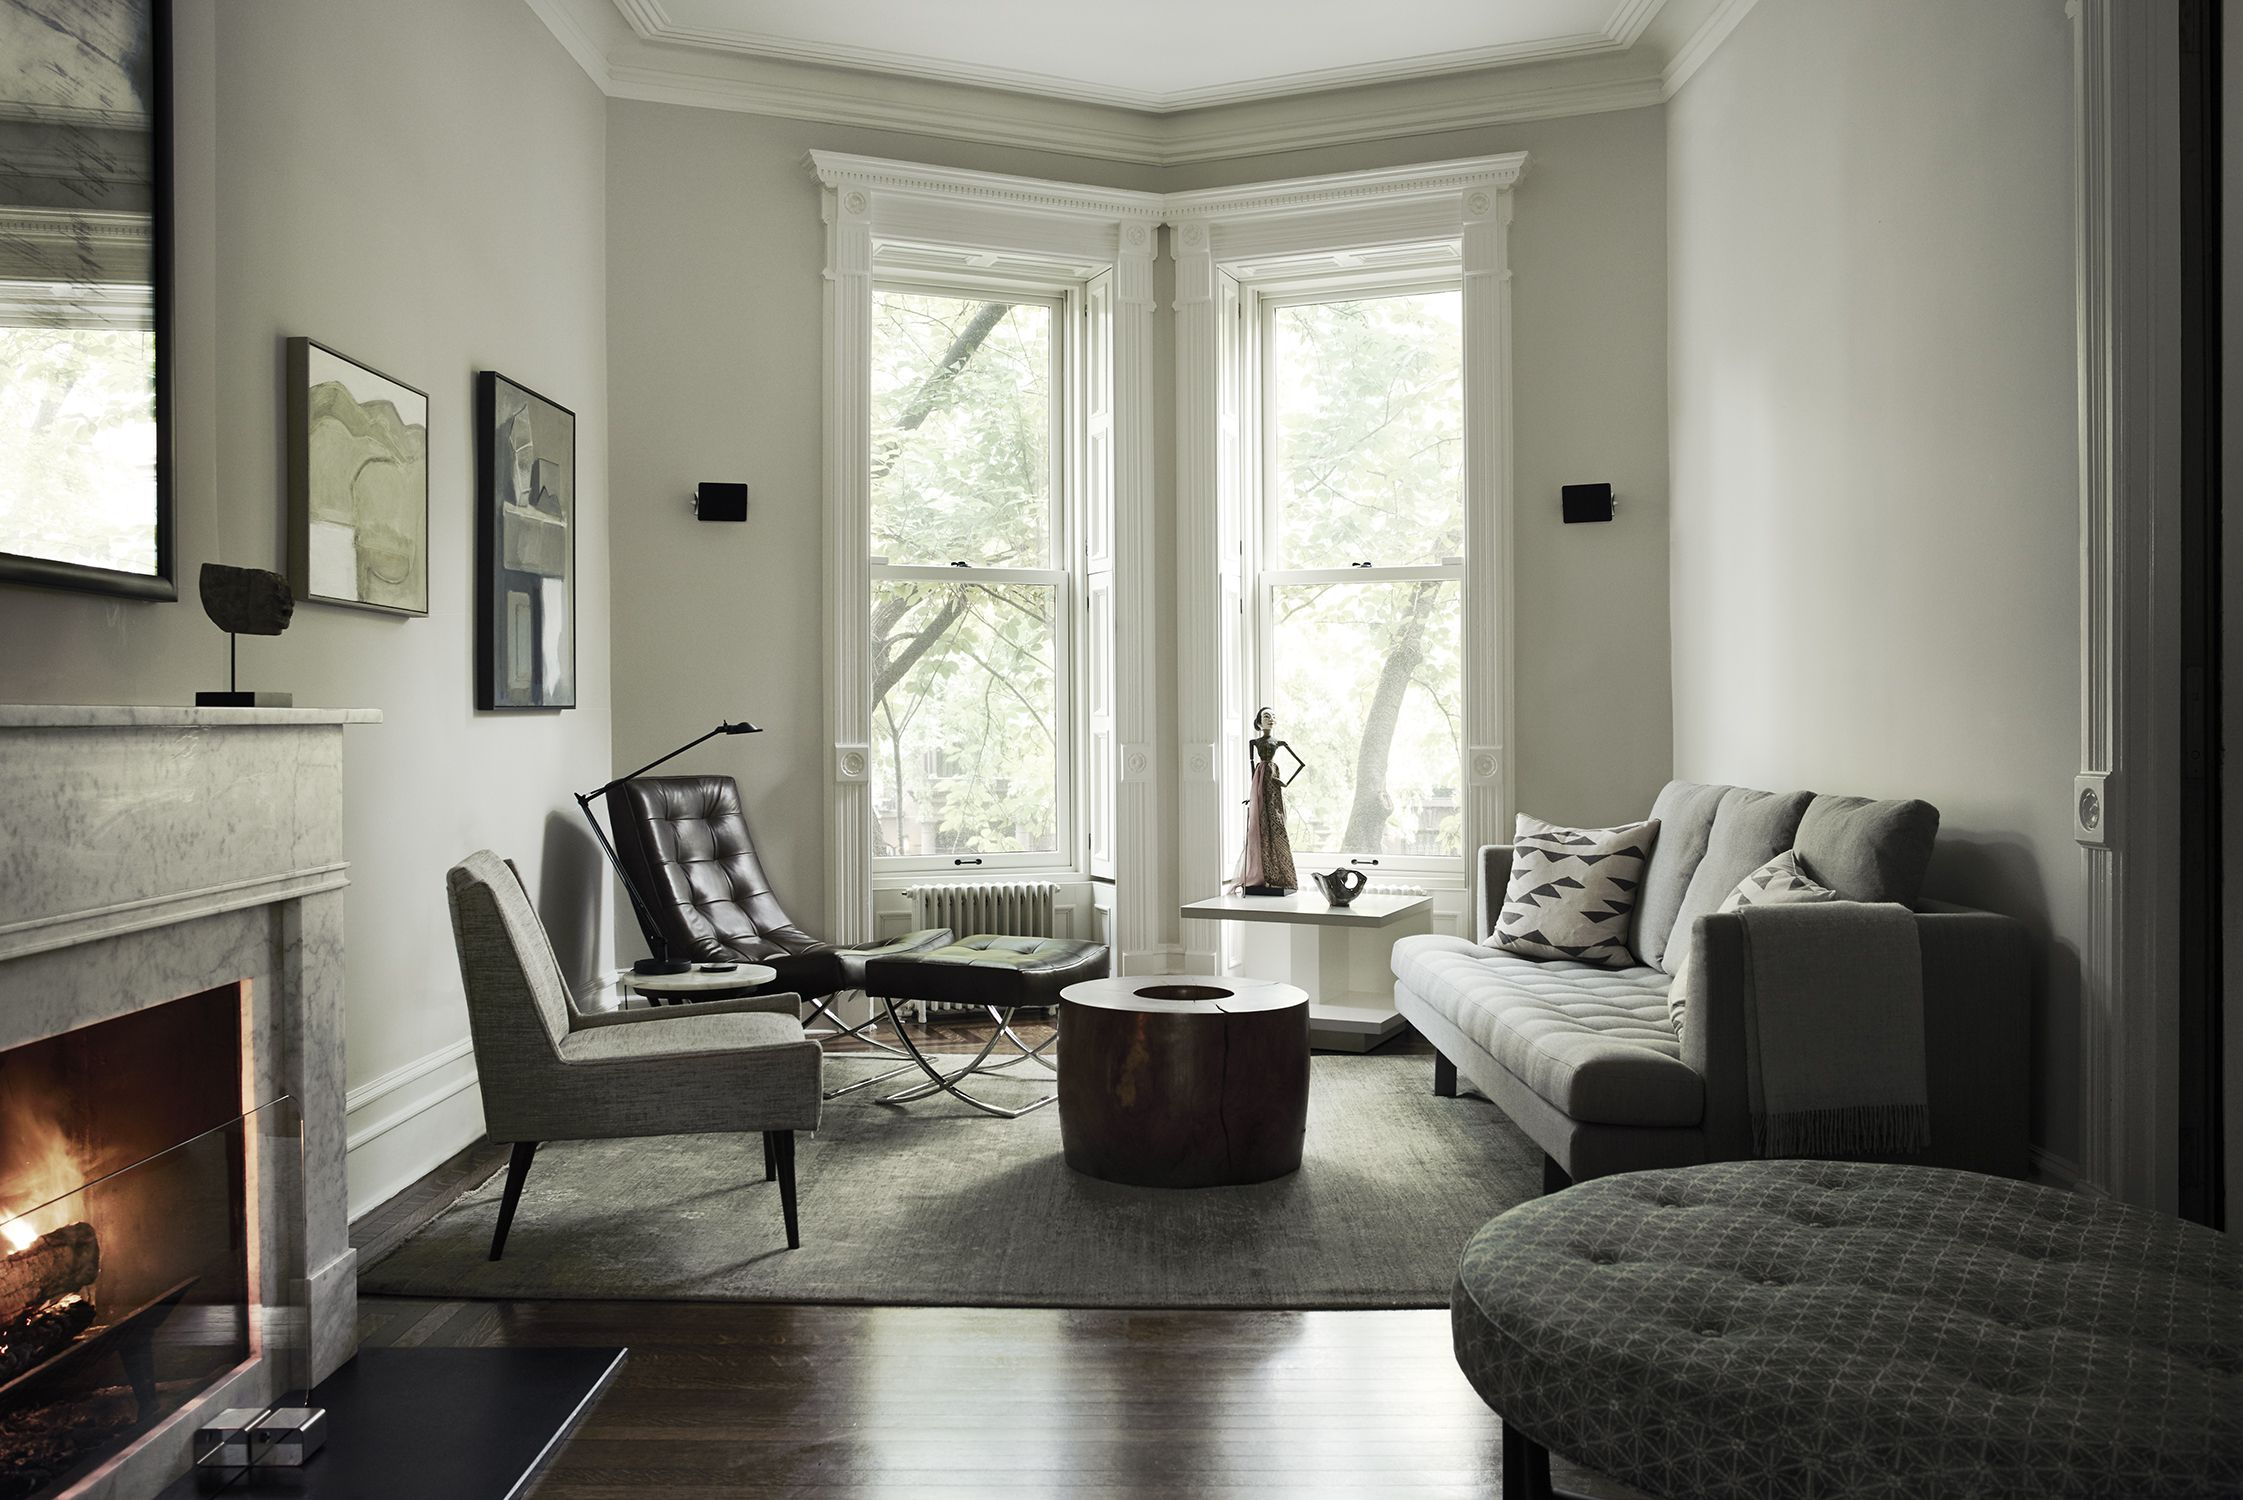 serenity now: creating calm and luxe in a brooklyn townhouse